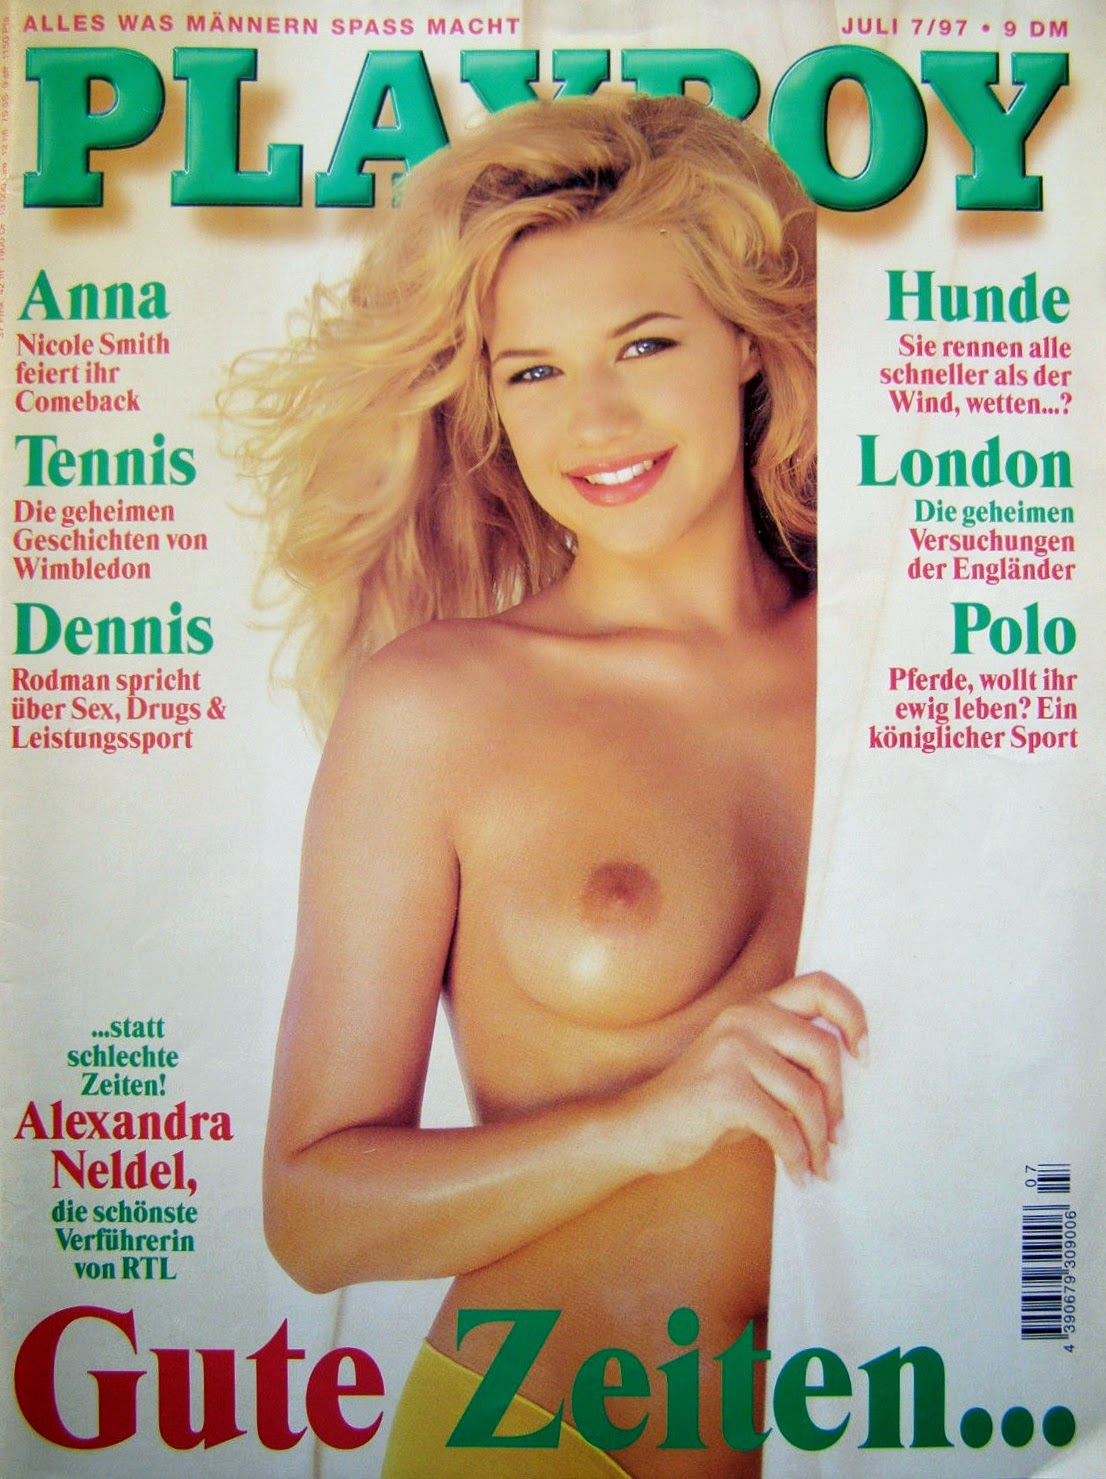 Nackt Bilder : Alexandra Neldel Playboy and Naked Photo   nackter arsch.com